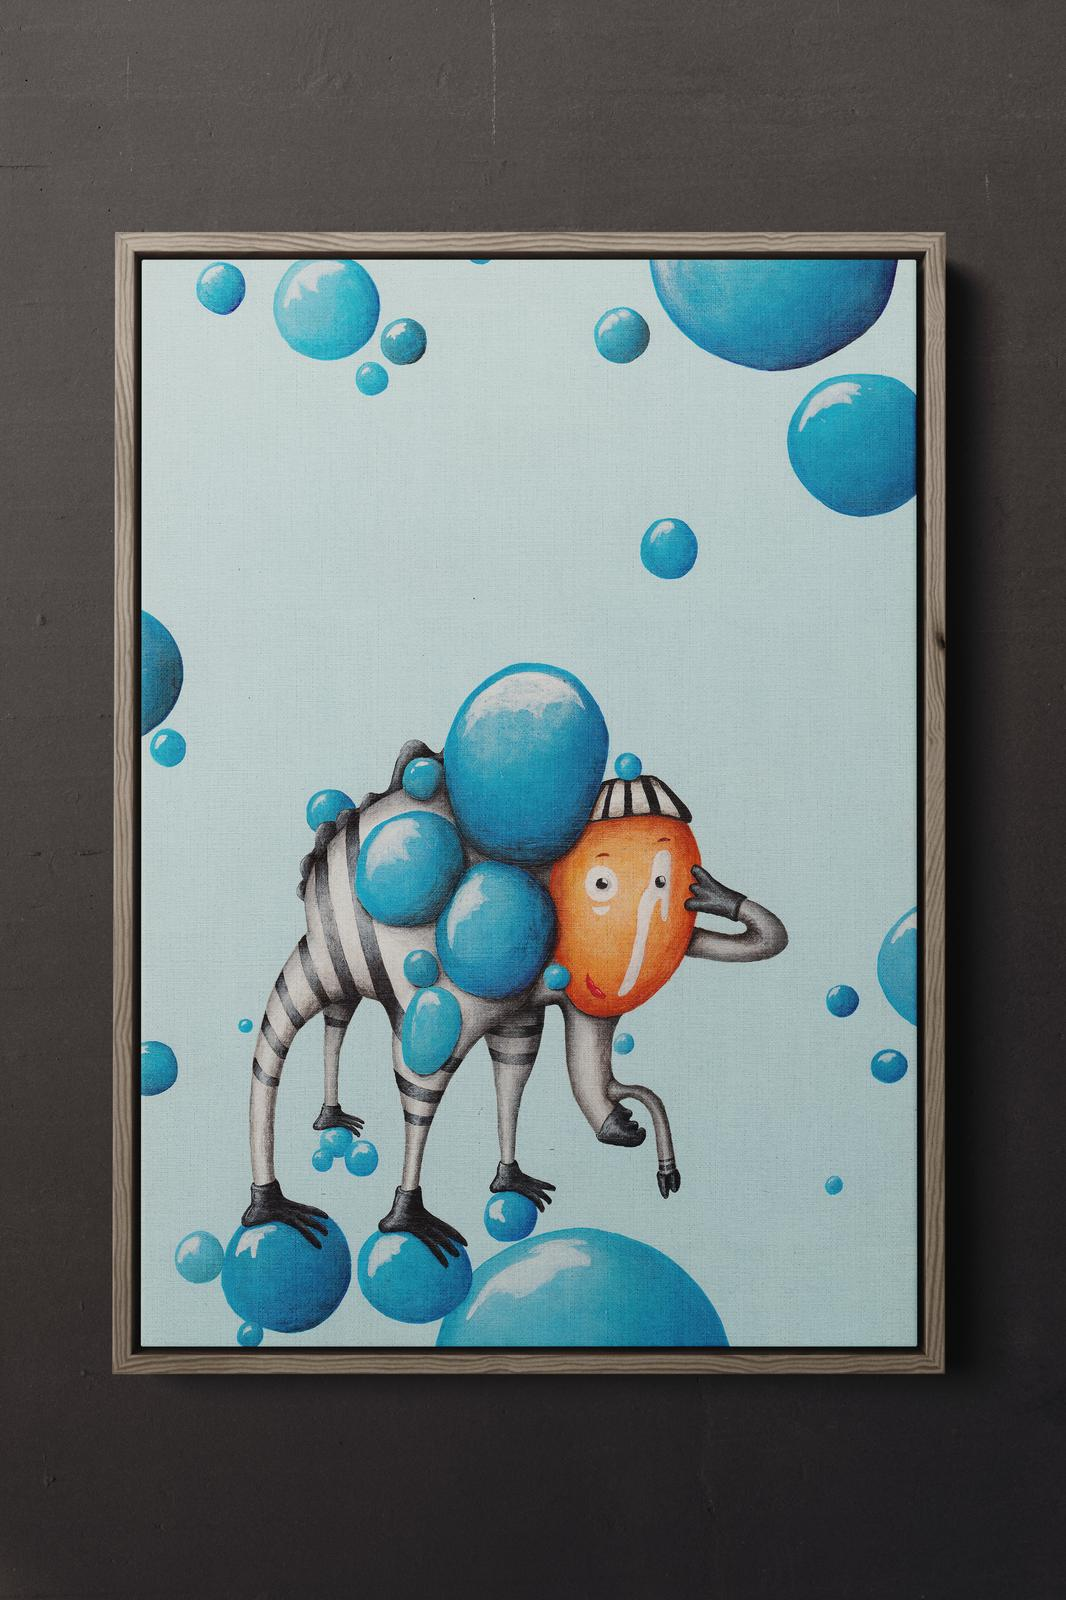 Small canvas print - 'Siegfried - the bubble man' by Jem Ham